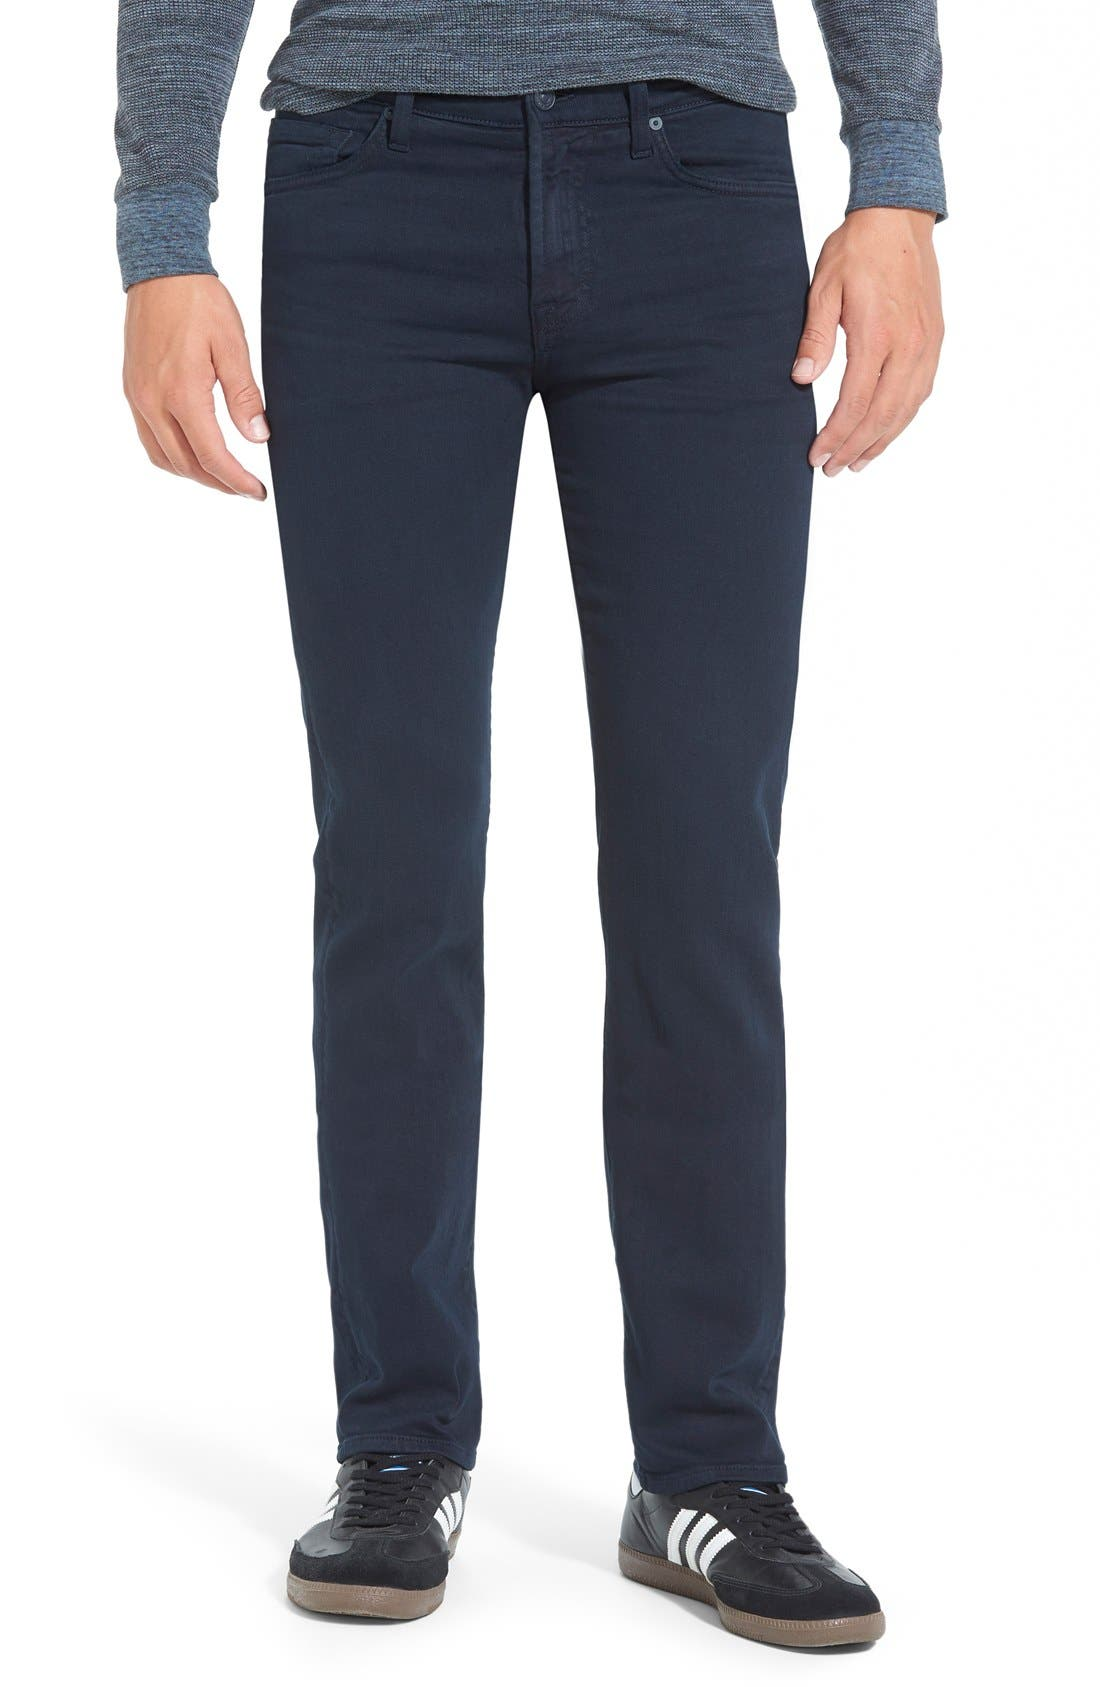 'Slimmy - Luxe Performance' Slim Fit Jeans,                         Main,                         color, Night Navy